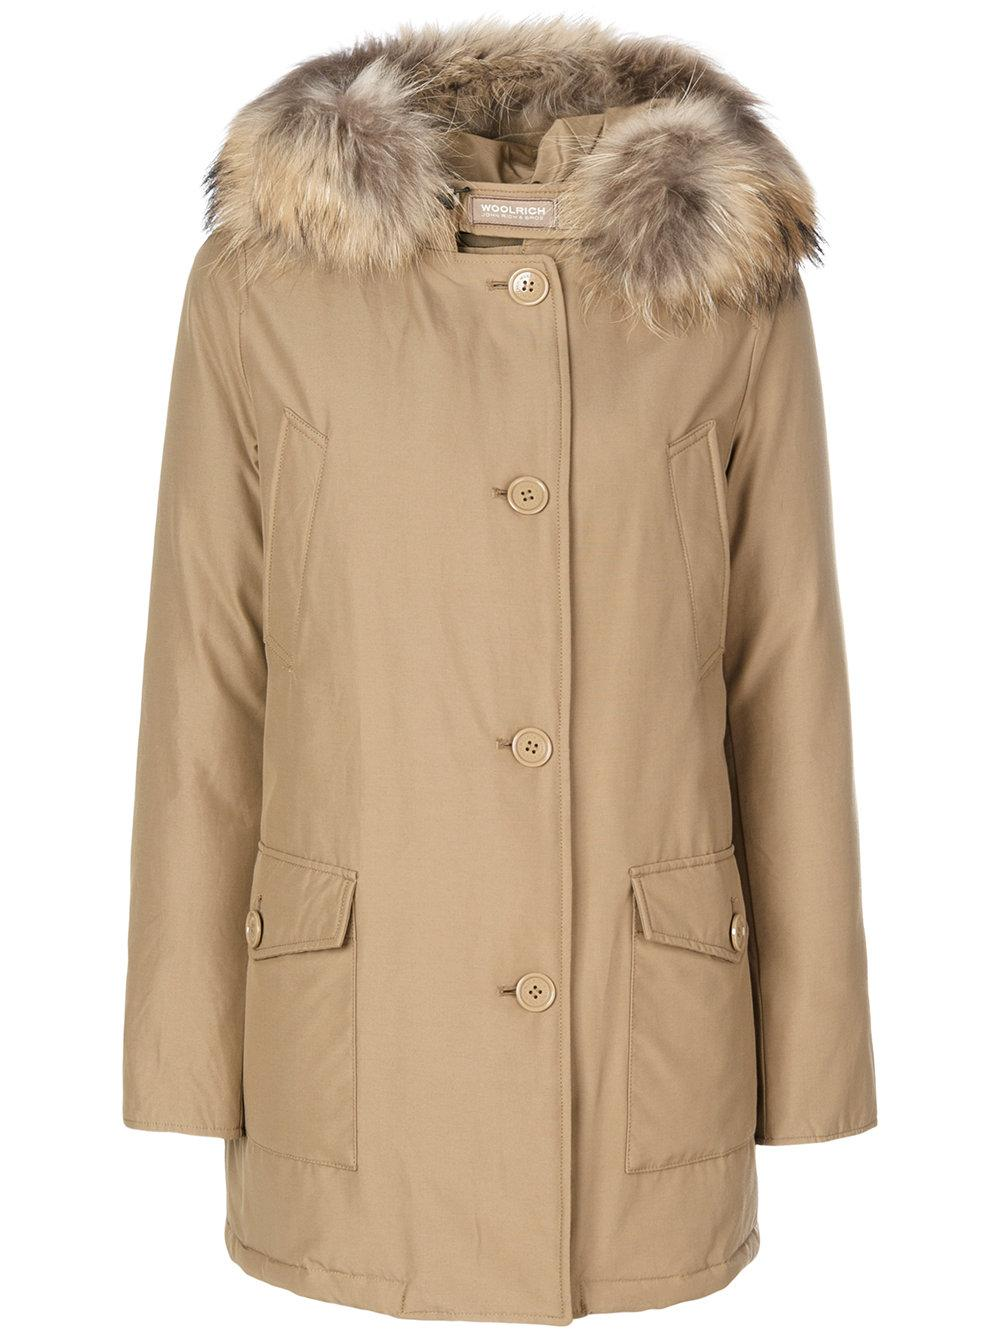 woolrich luxury arctic parka coat in natural save 15 lyst. Black Bedroom Furniture Sets. Home Design Ideas